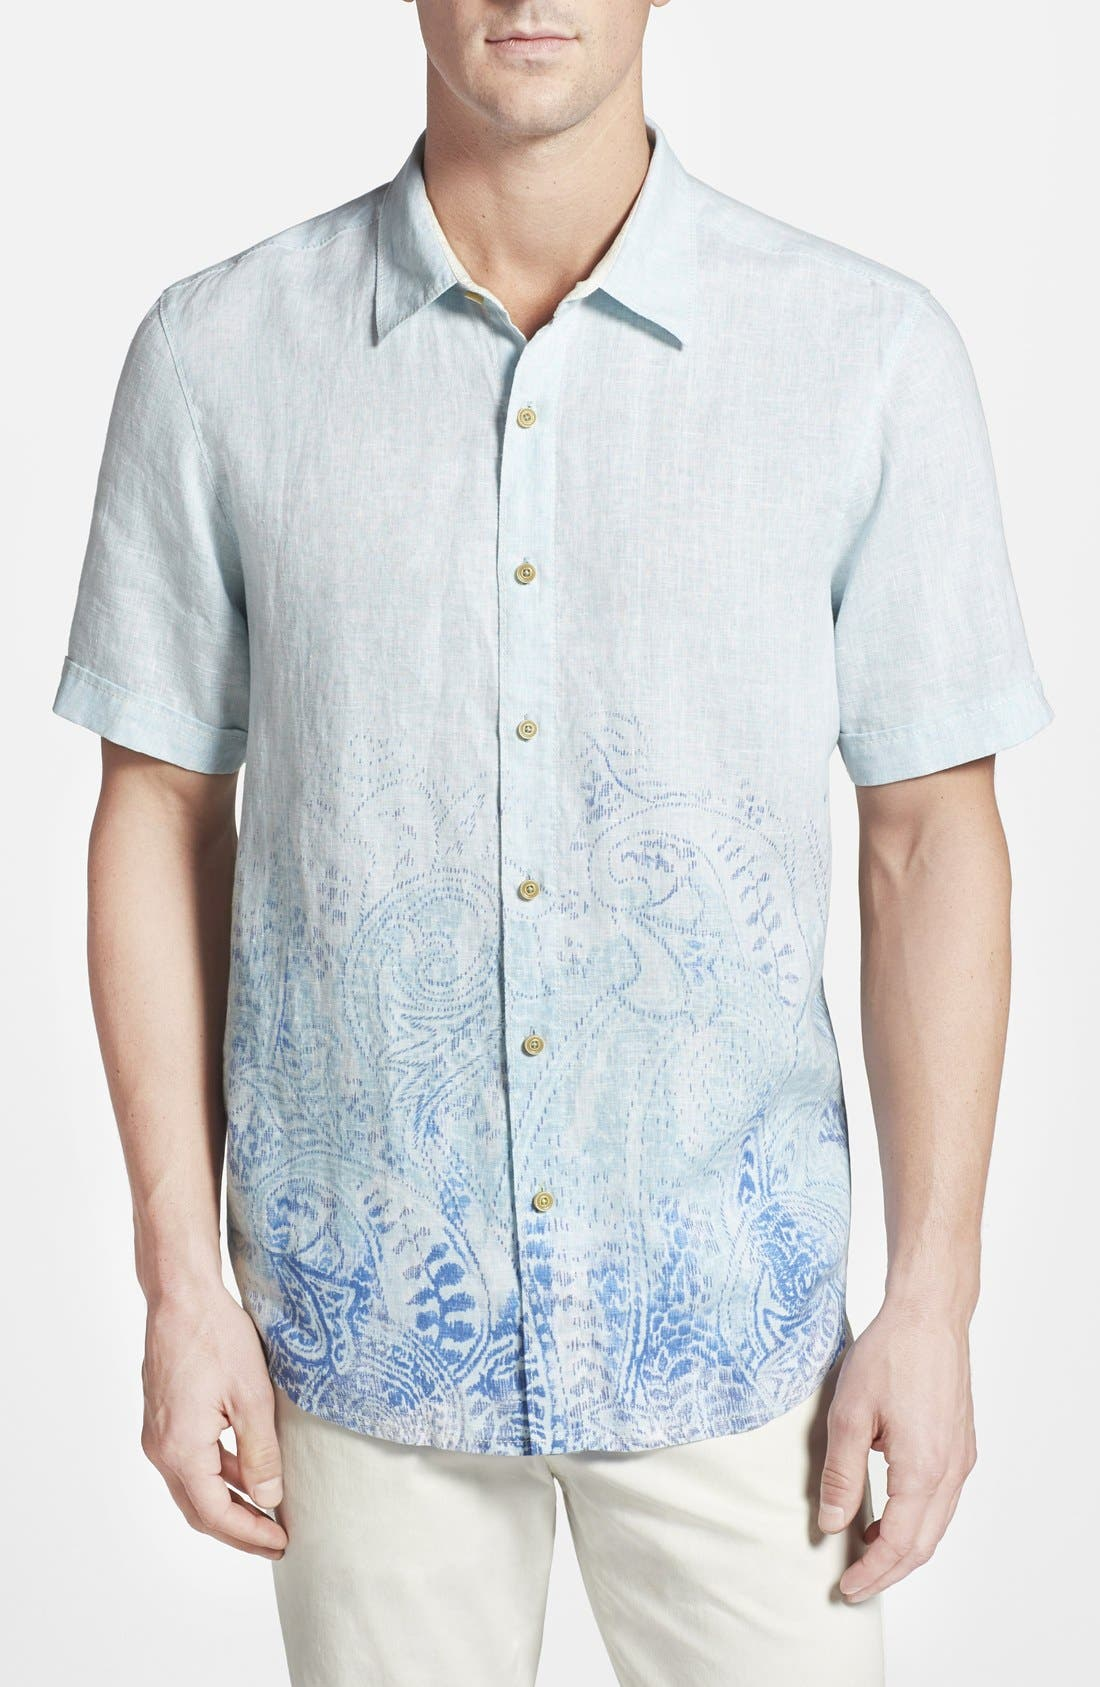 TOMMY BAHAMA,                             'Pazatano Breezer' Island Modern Fit Short Sleeve Sport Shirt,                             Main thumbnail 1, color,                             400